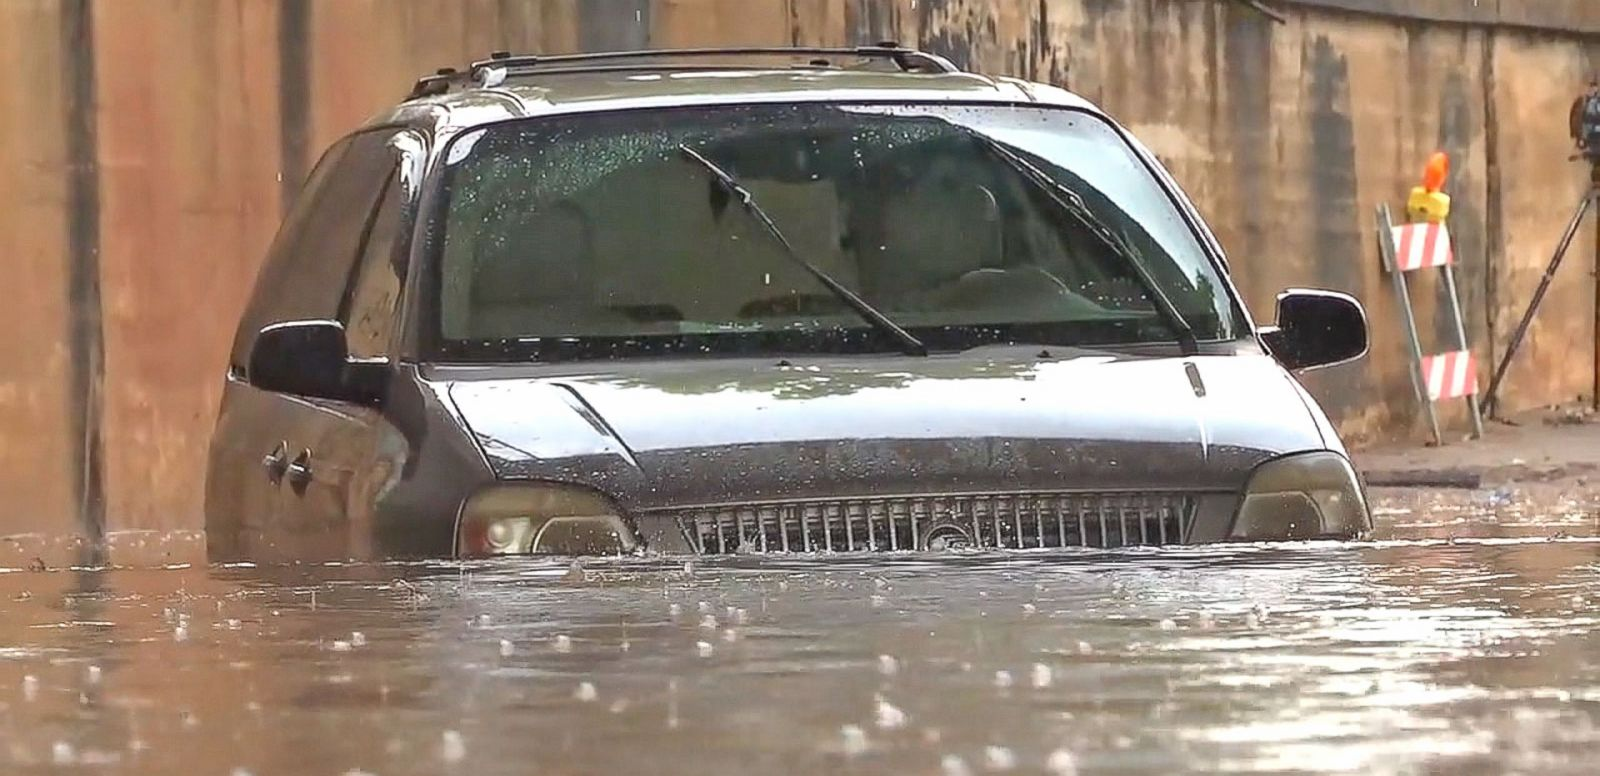 VIDEO: Record Rains Hit Hard in Texas Causing Flash Flooding